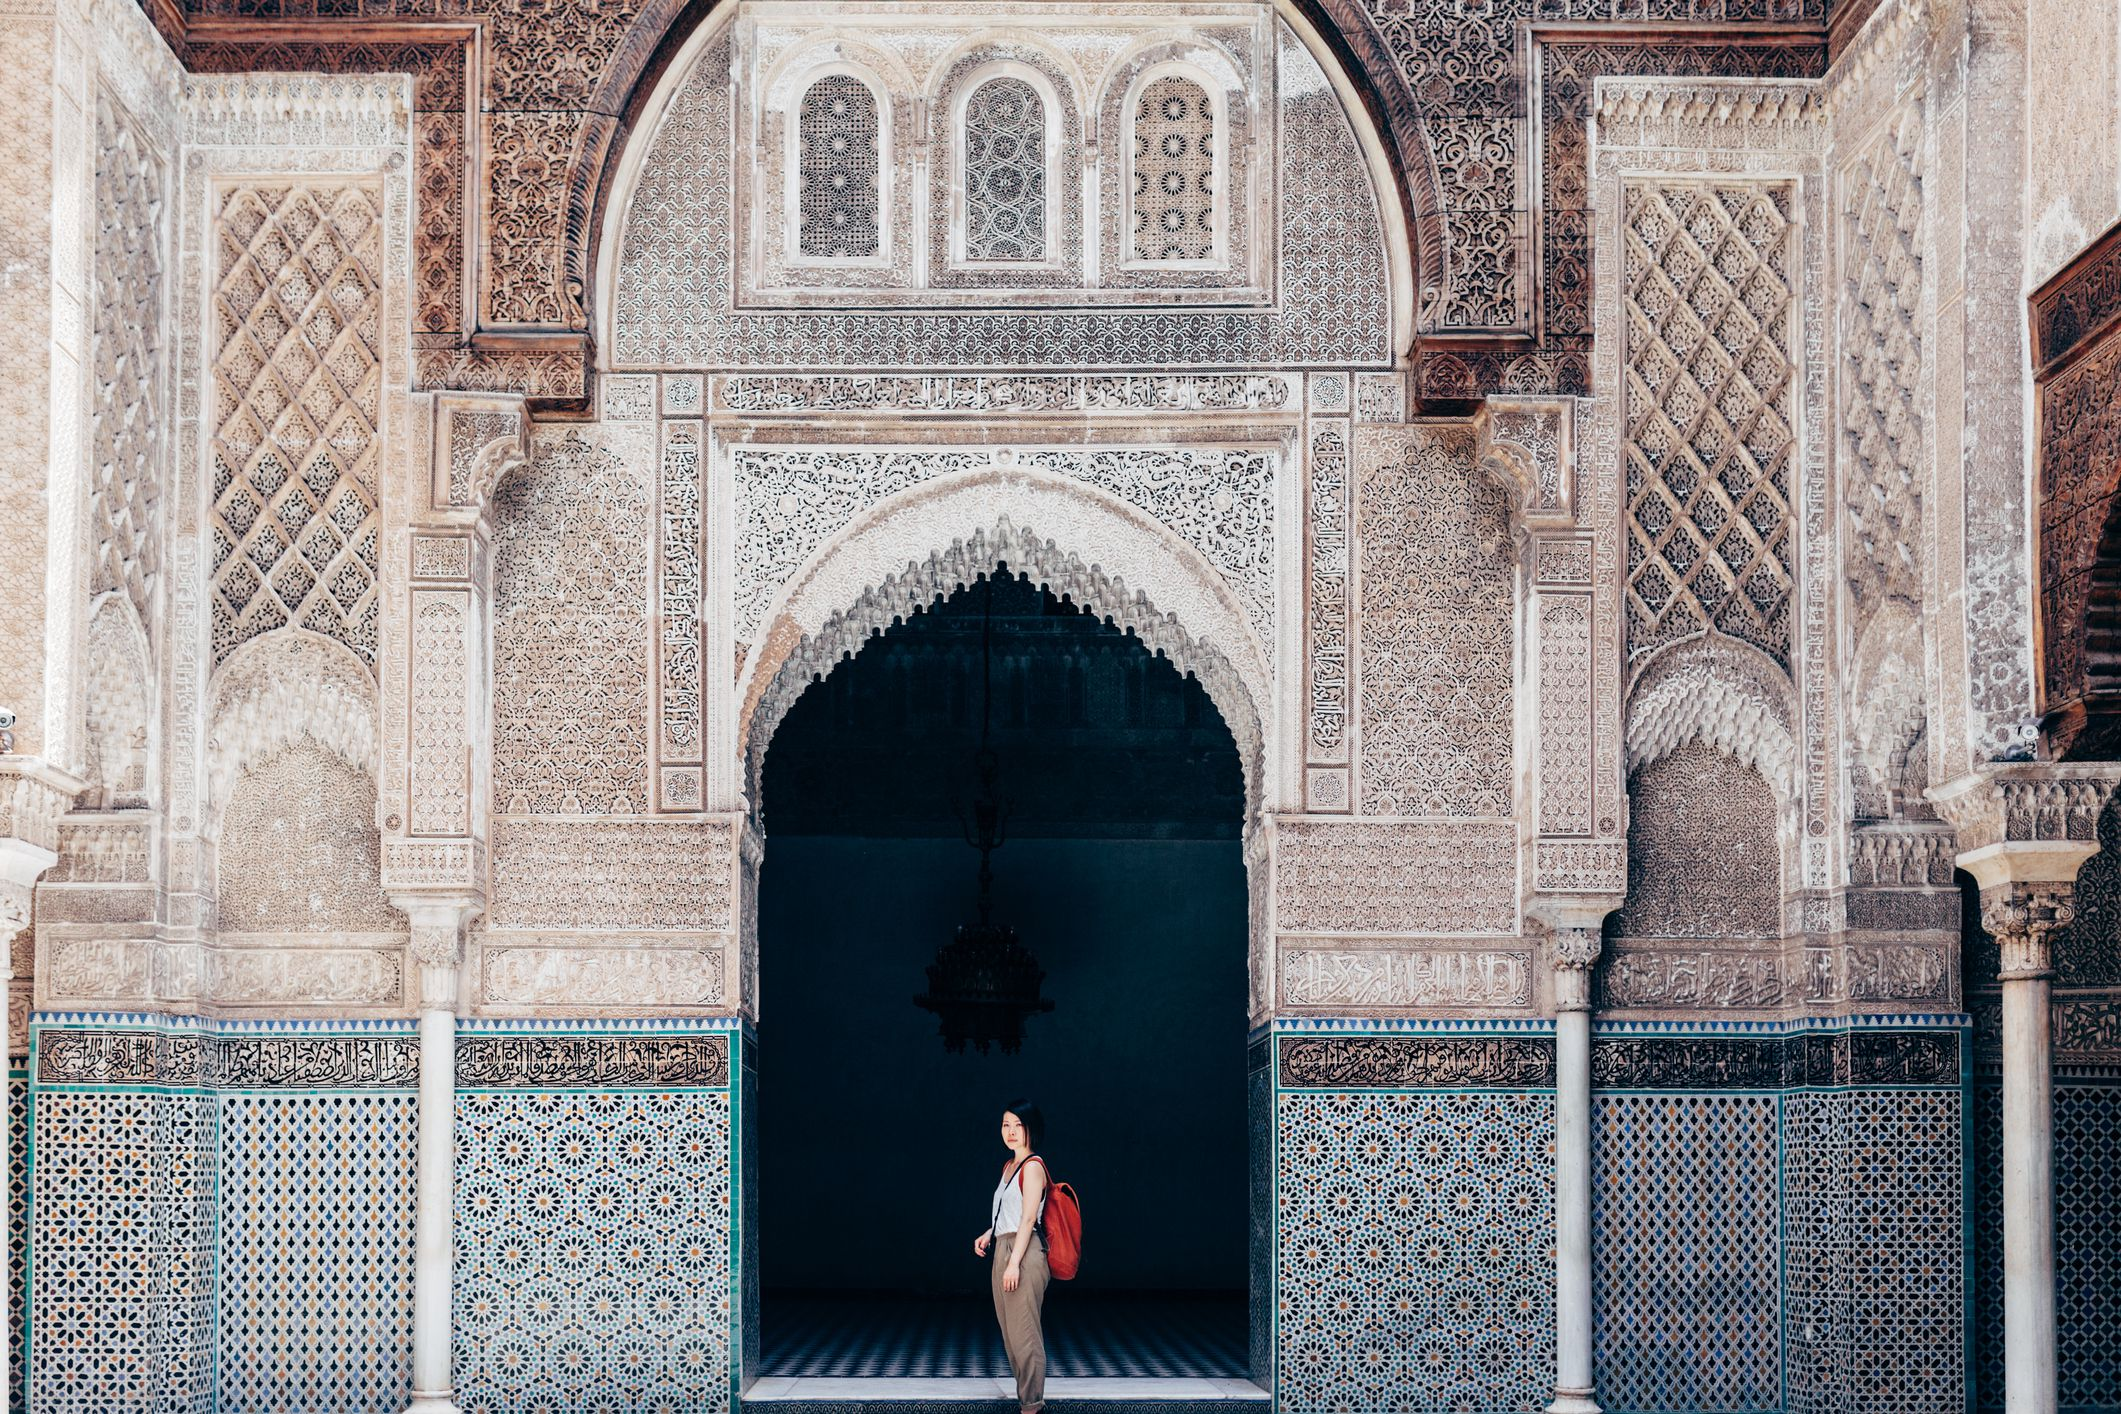 A tourist in an old mosque in Marrakech.